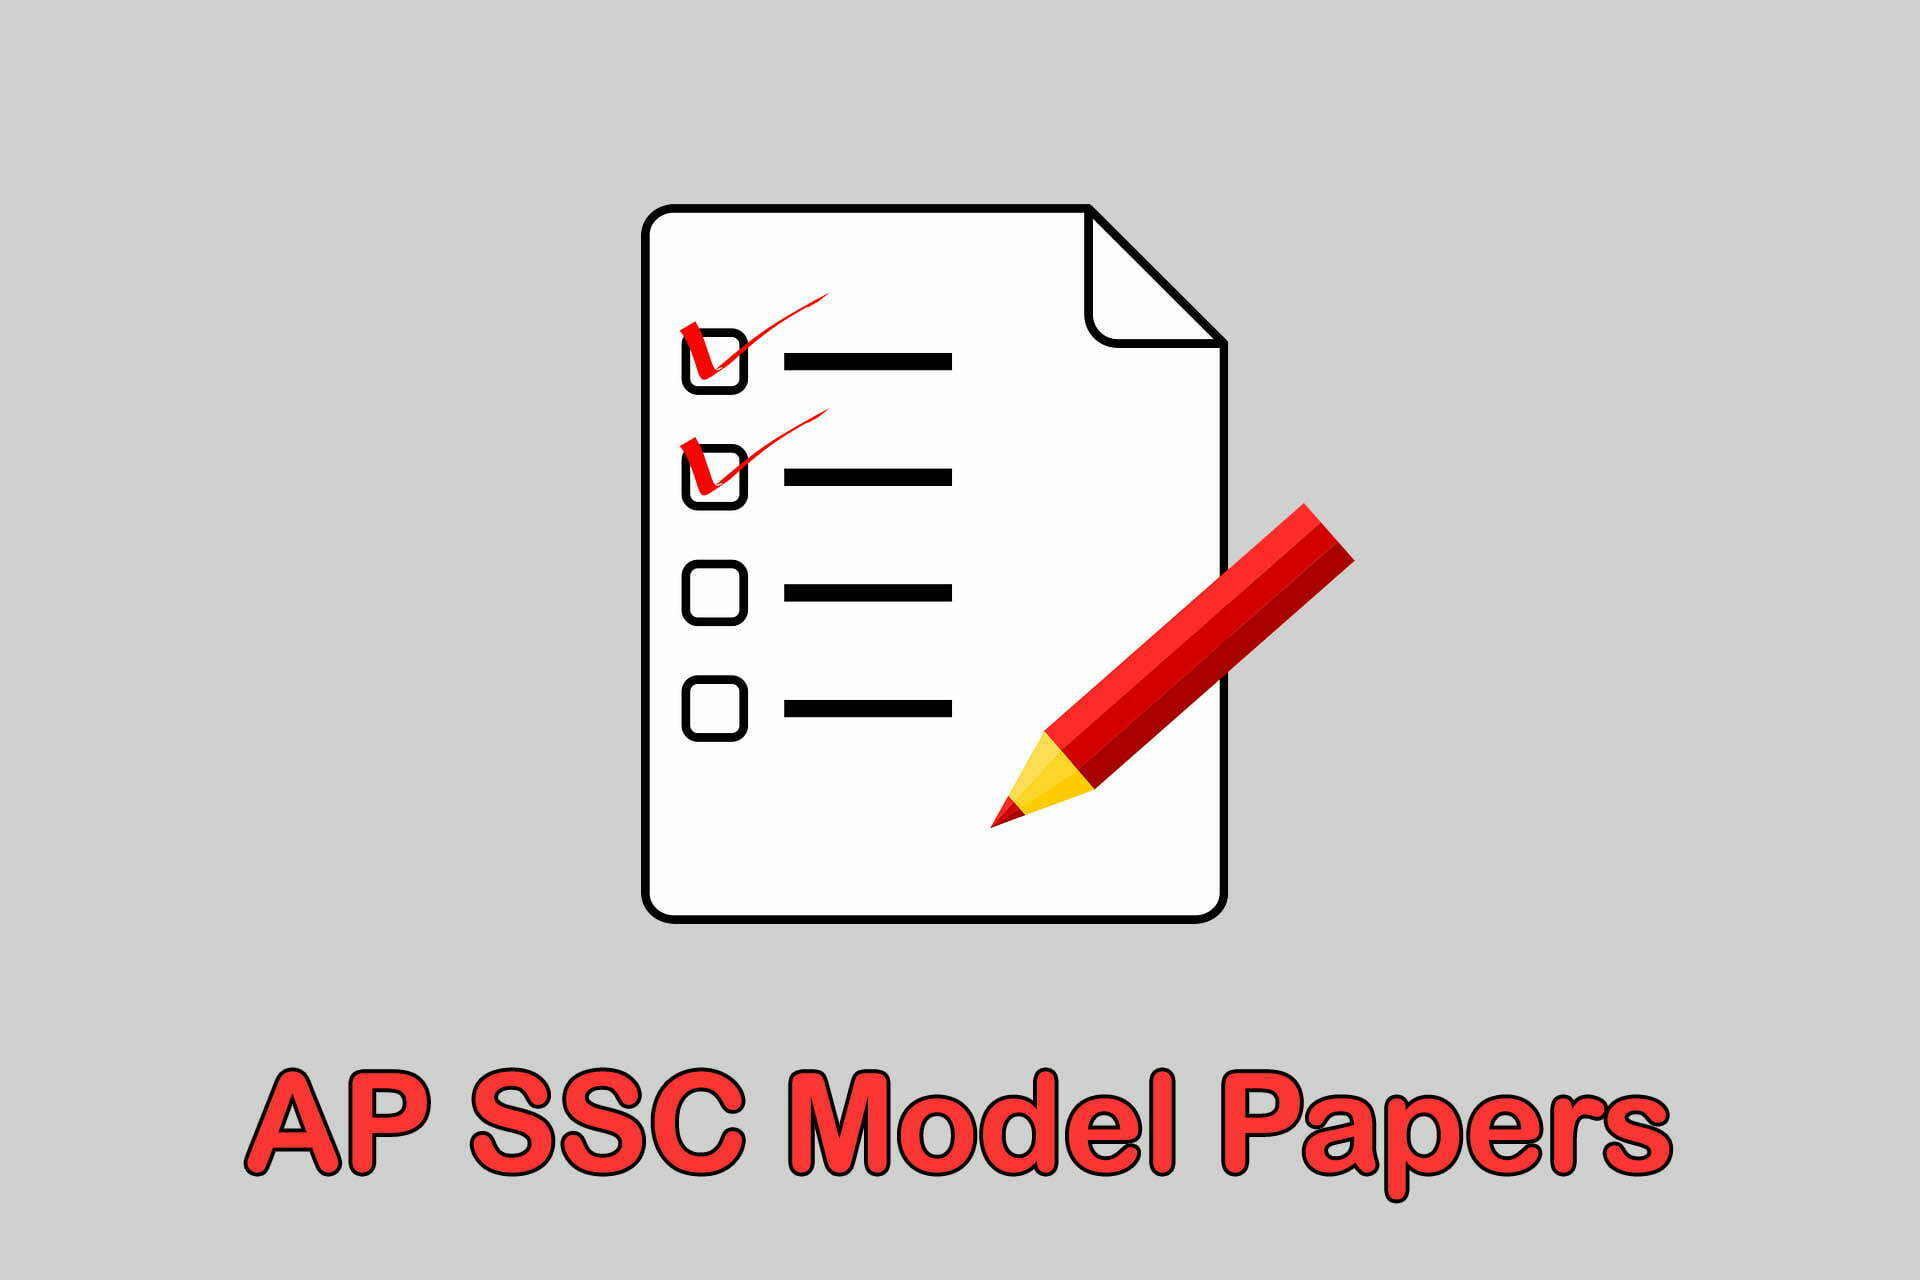 AP SSC Model Papers